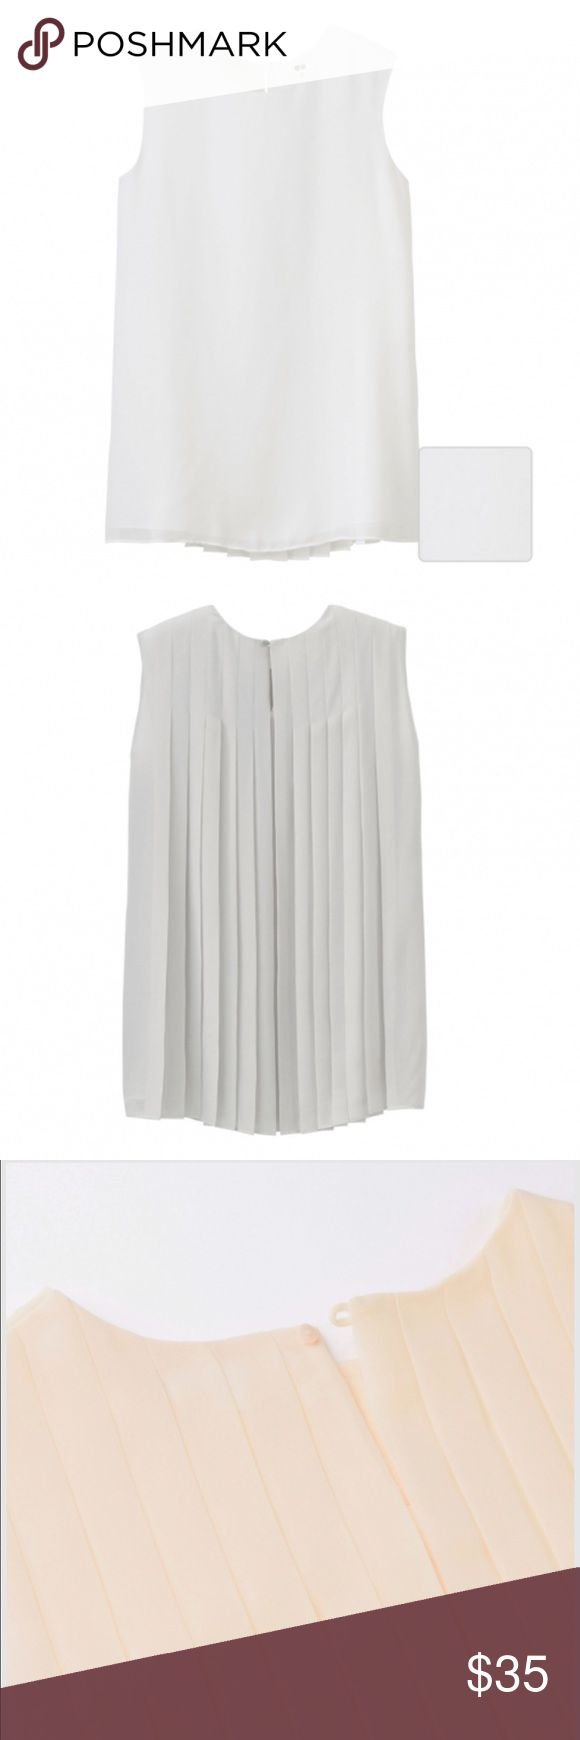 WhitePleated Back Blouse - Size Xs NWT Uniqlo White Blouse - Size Xs - Back Pleated - New Uniqlo Tops Blouses